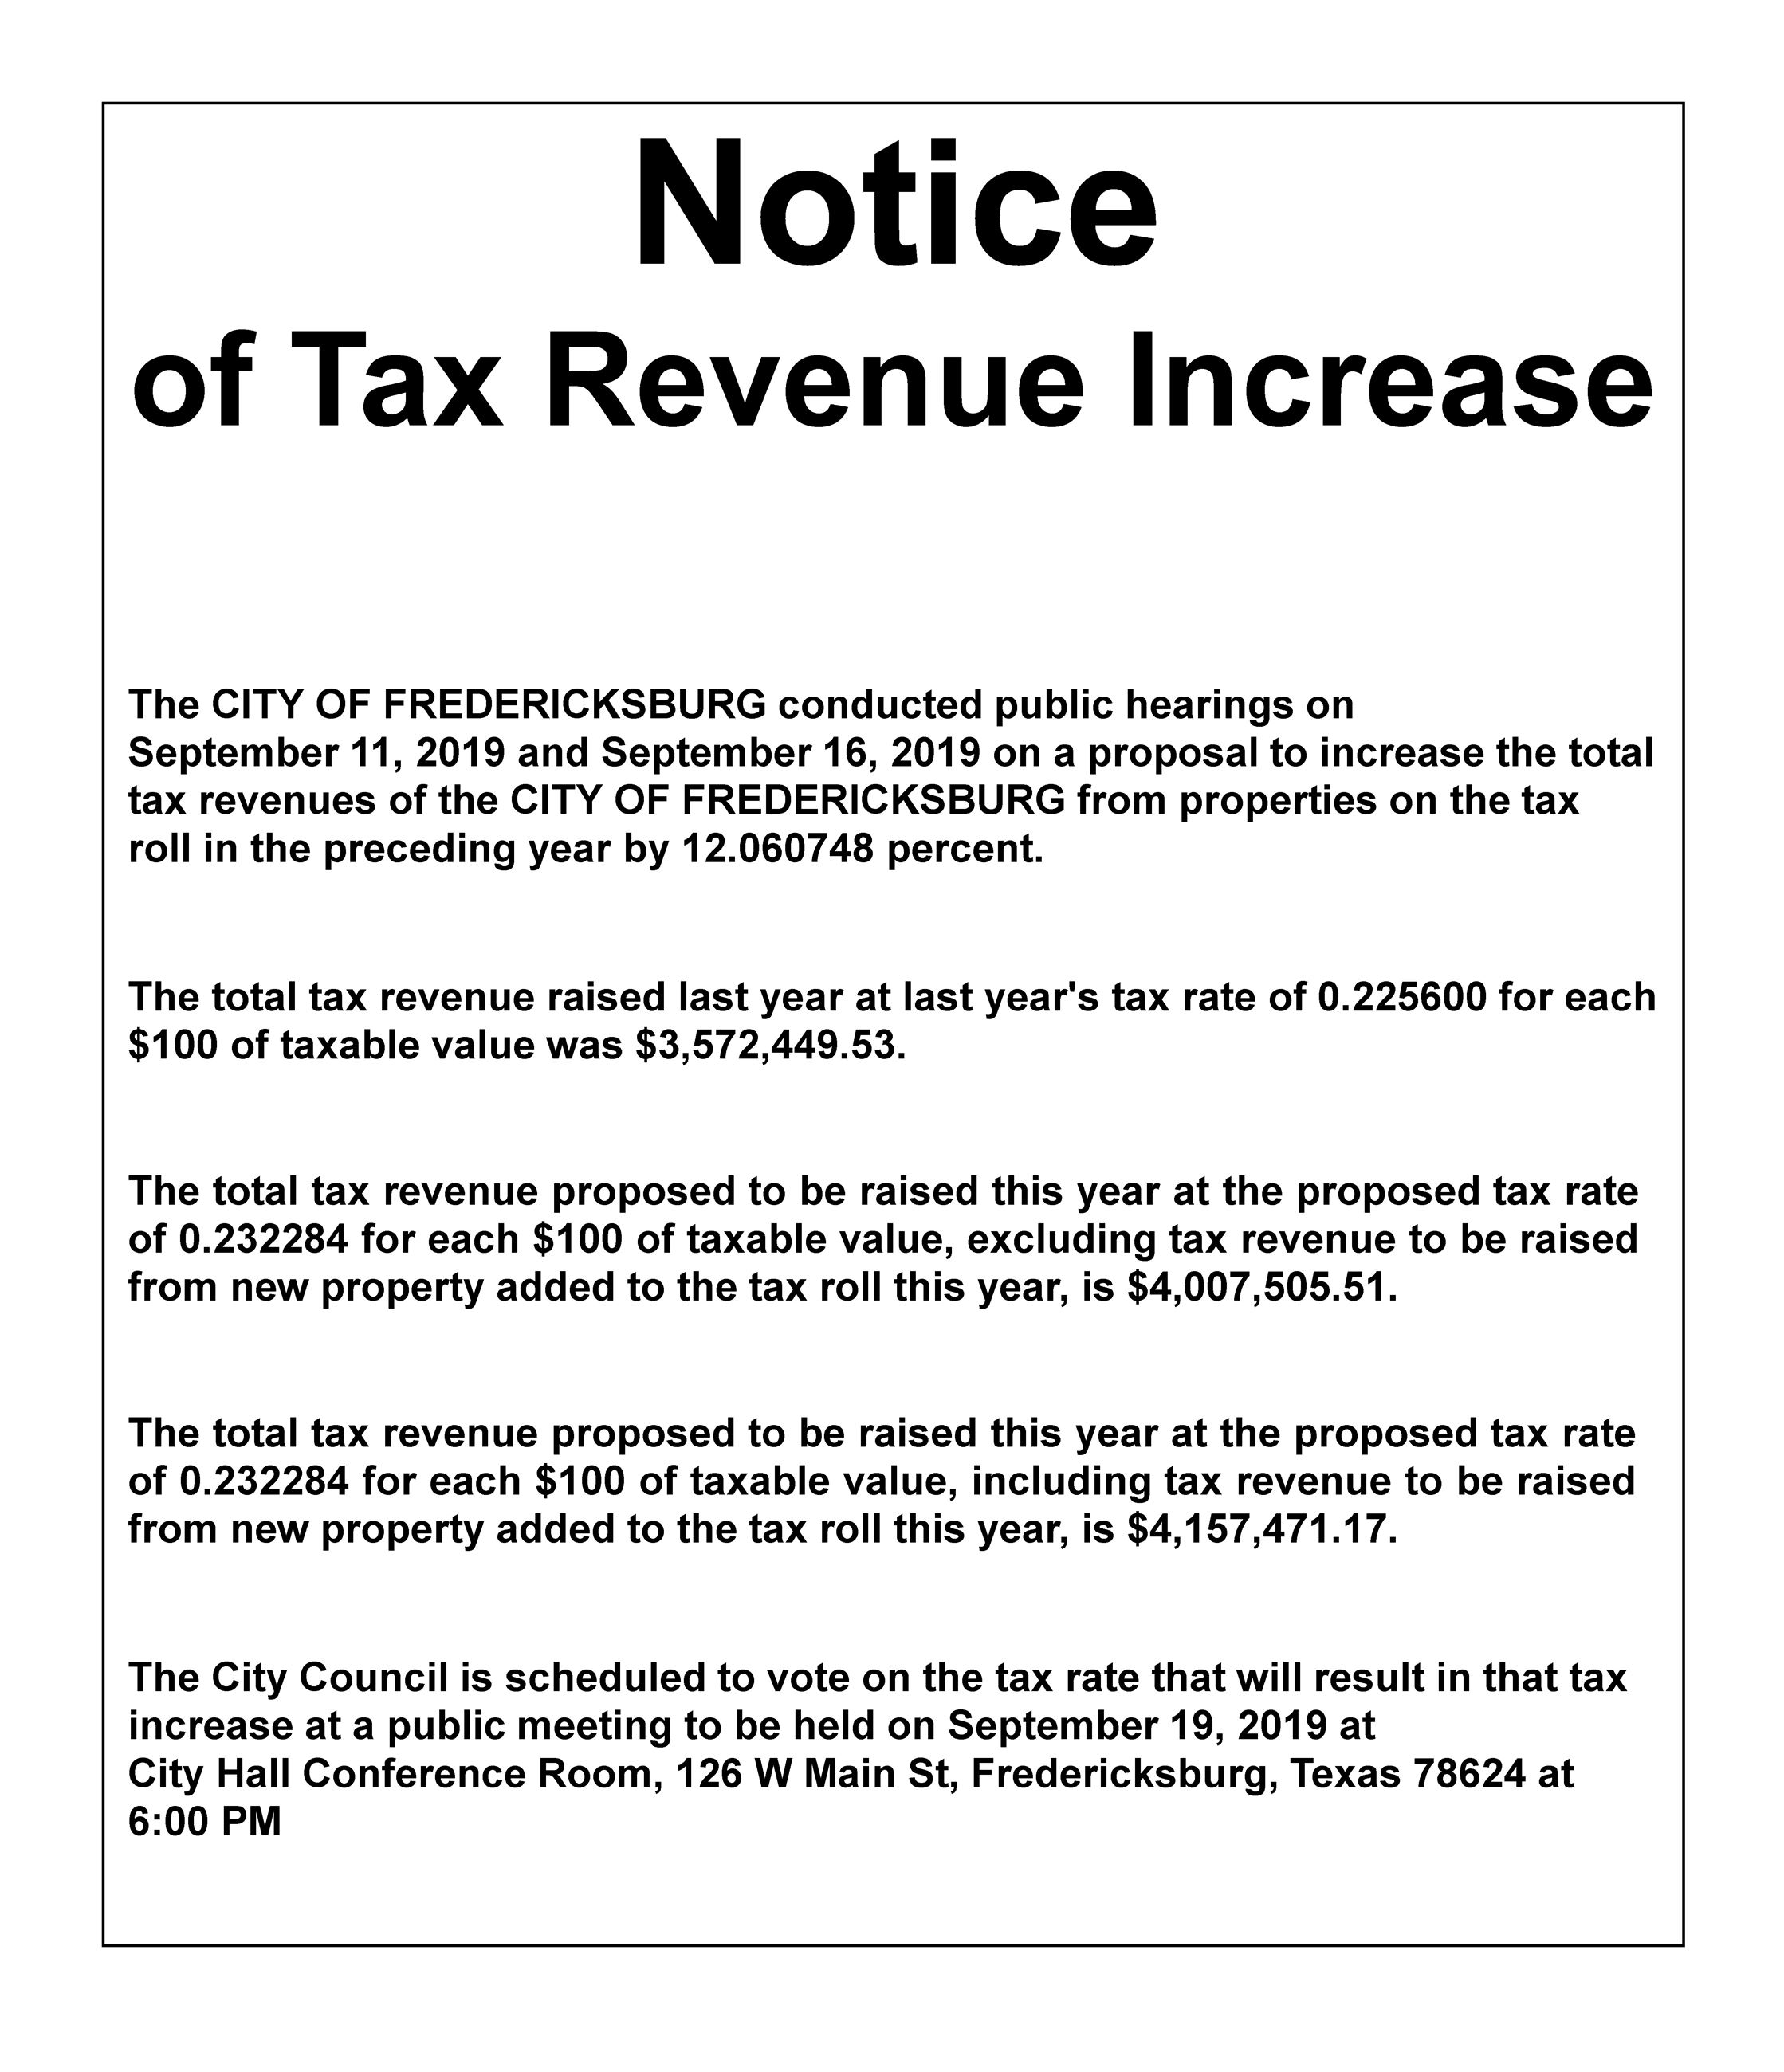 Notice of Tax Revenue Increase - Vote on Tax Rate